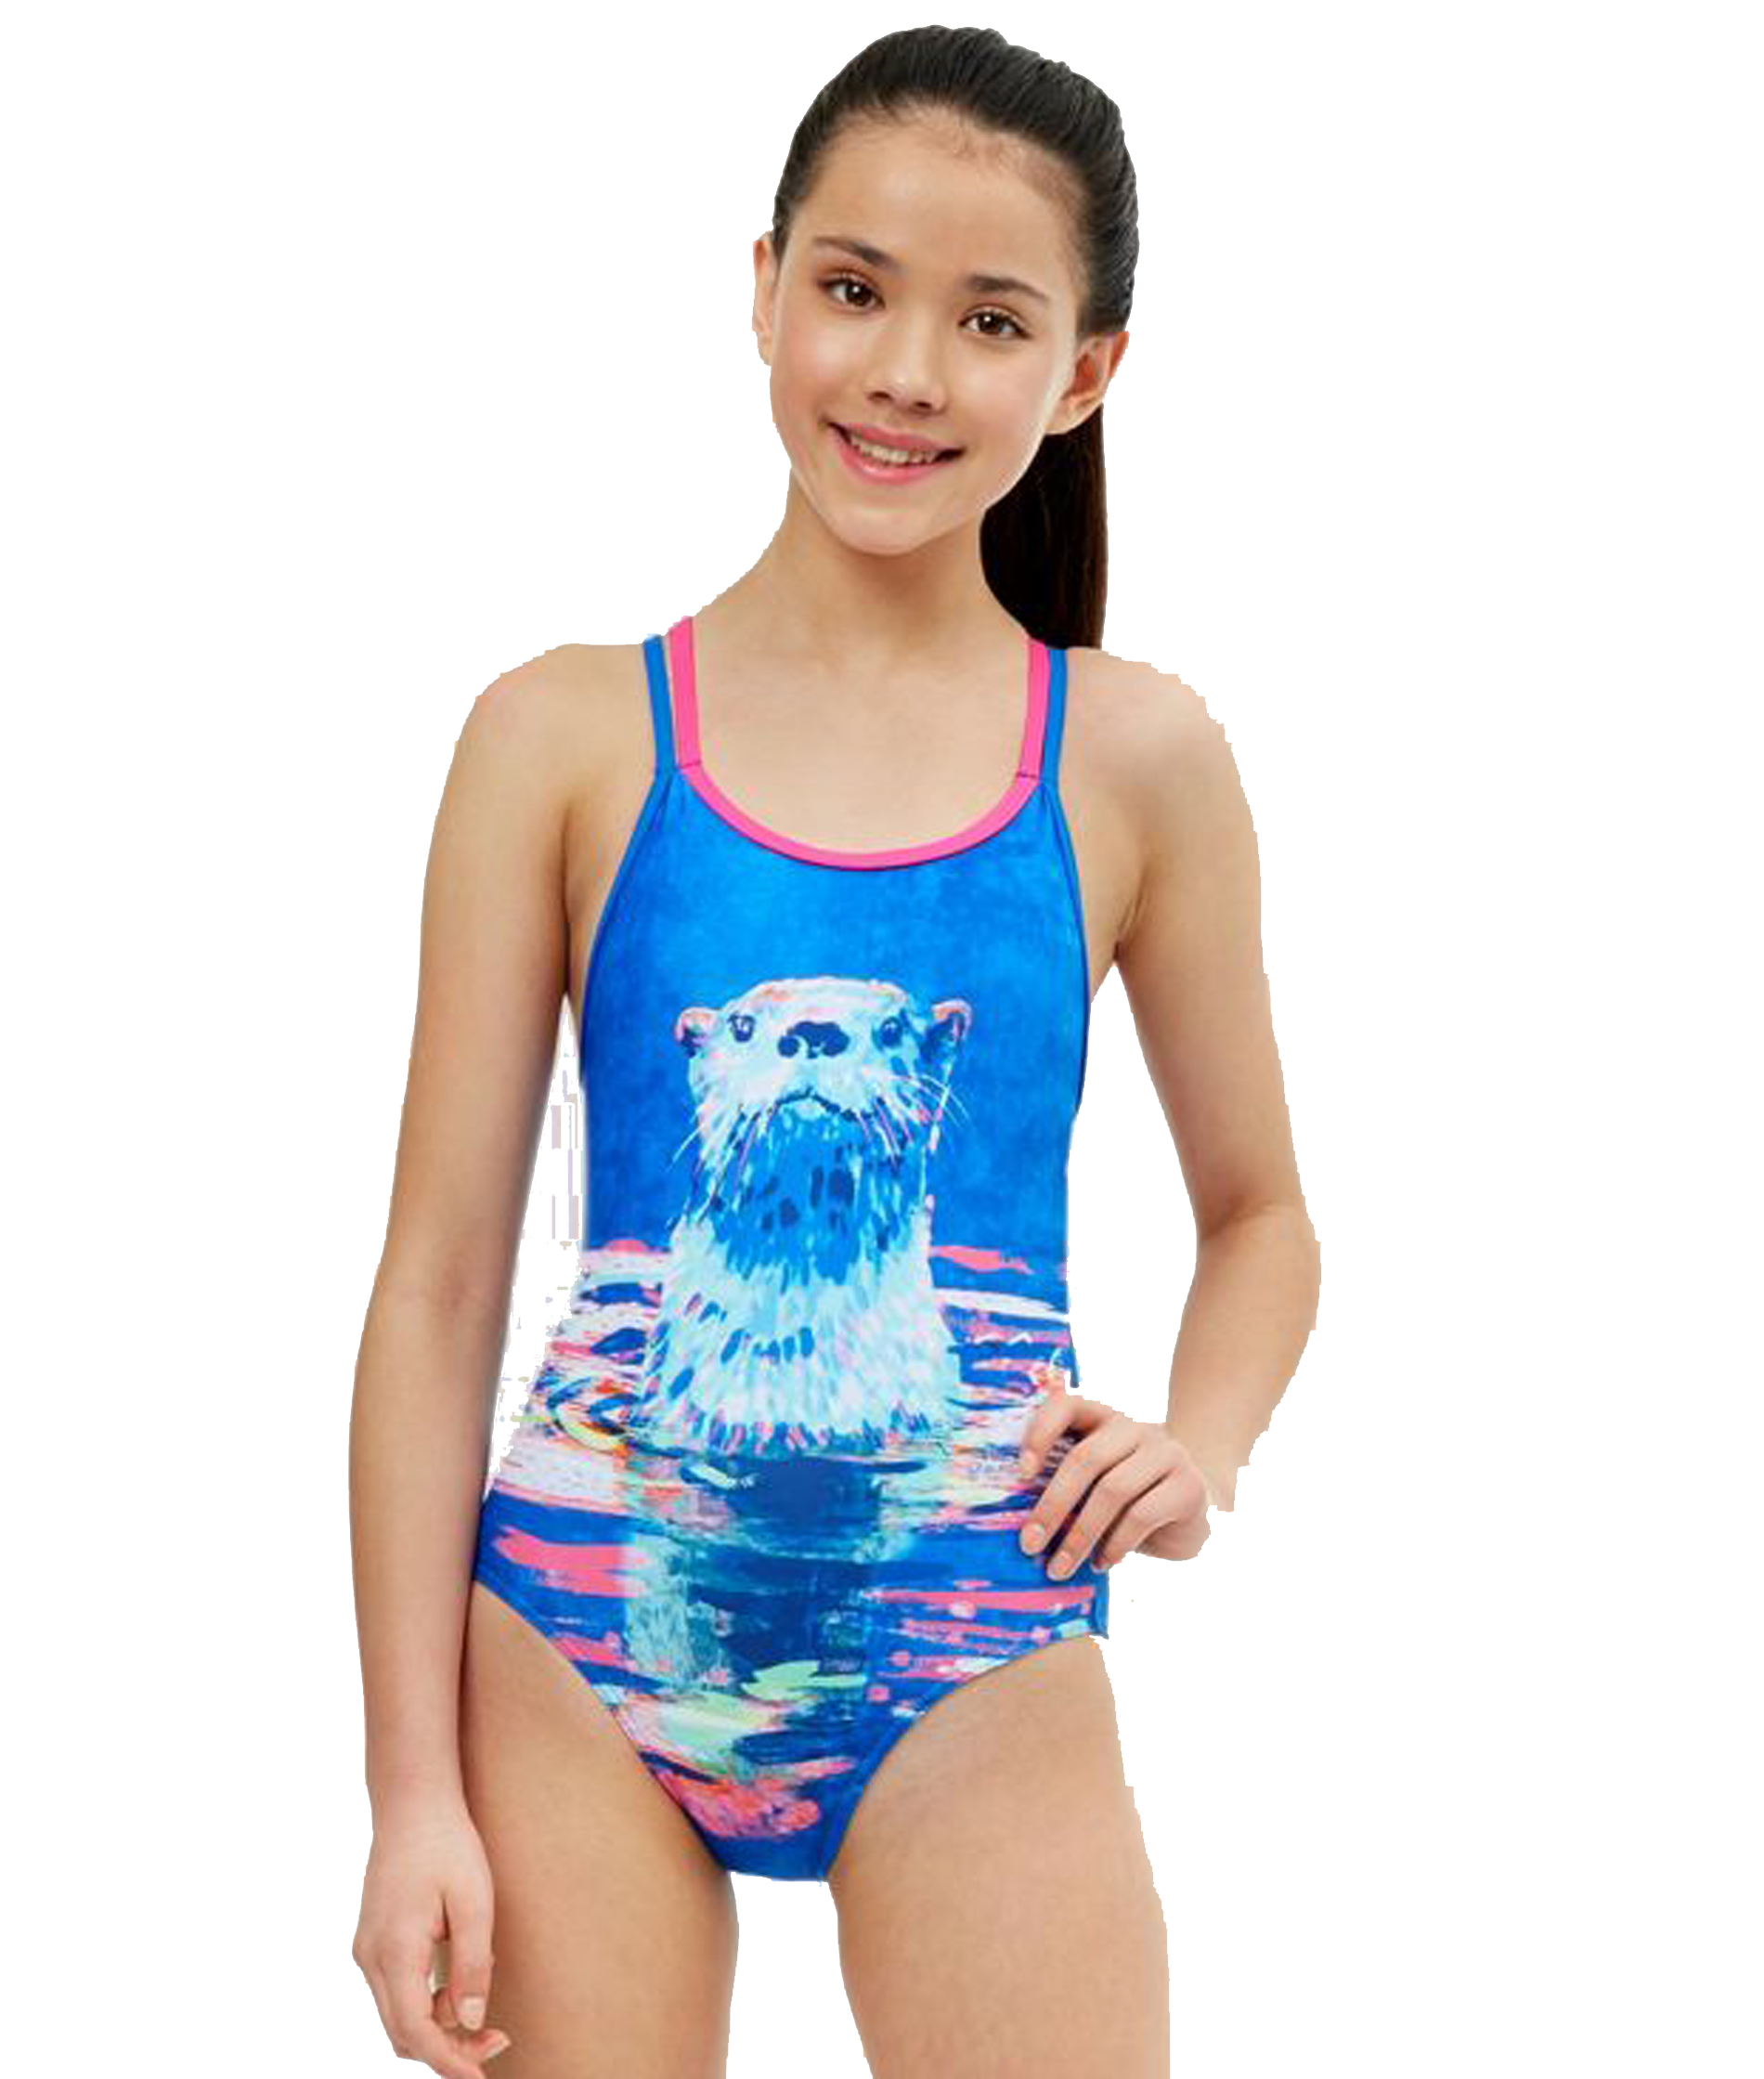 Maru Girls Artie Pacer Swimsuit